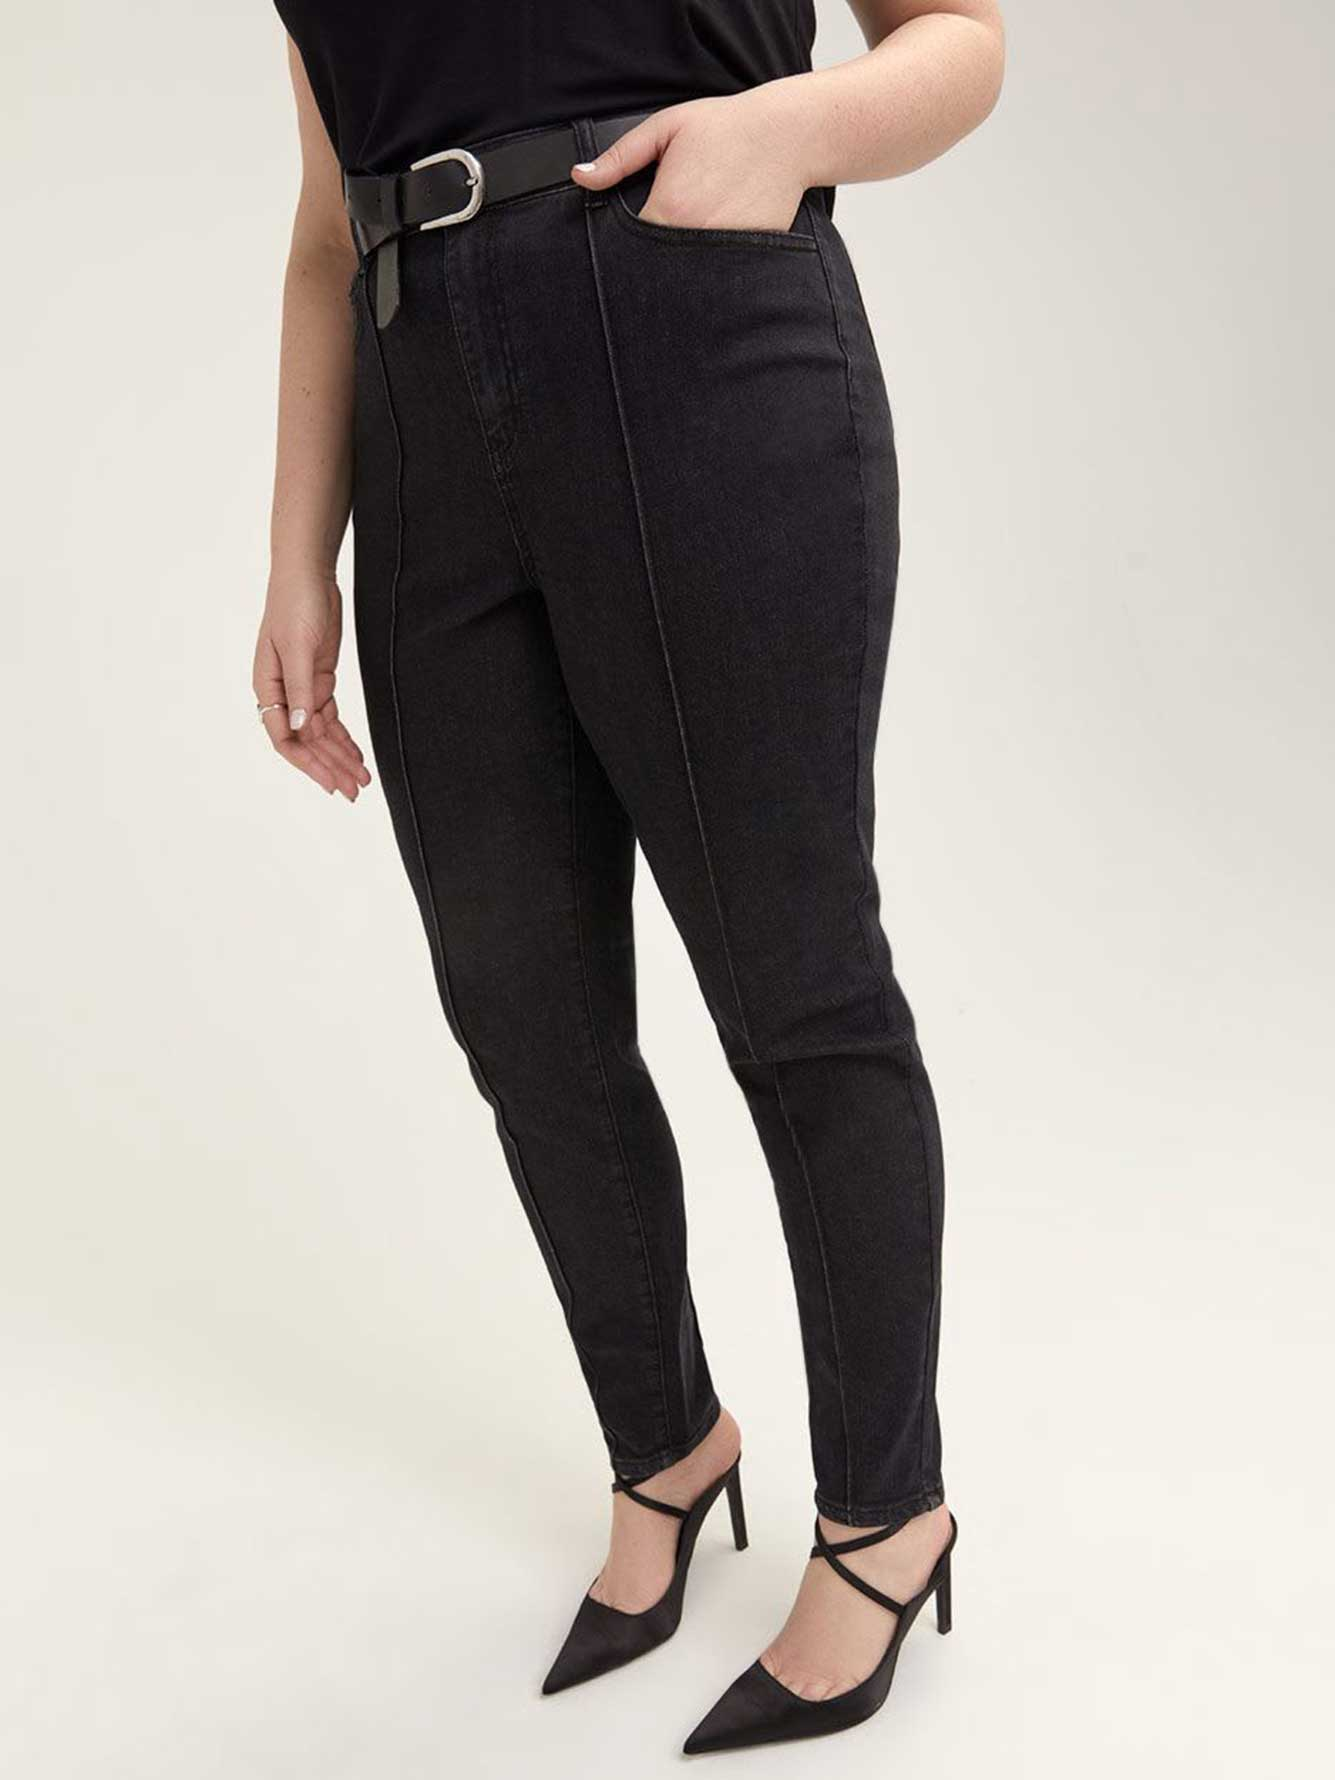 Slightly Curvy Skinny Pintuck Jean - L&L